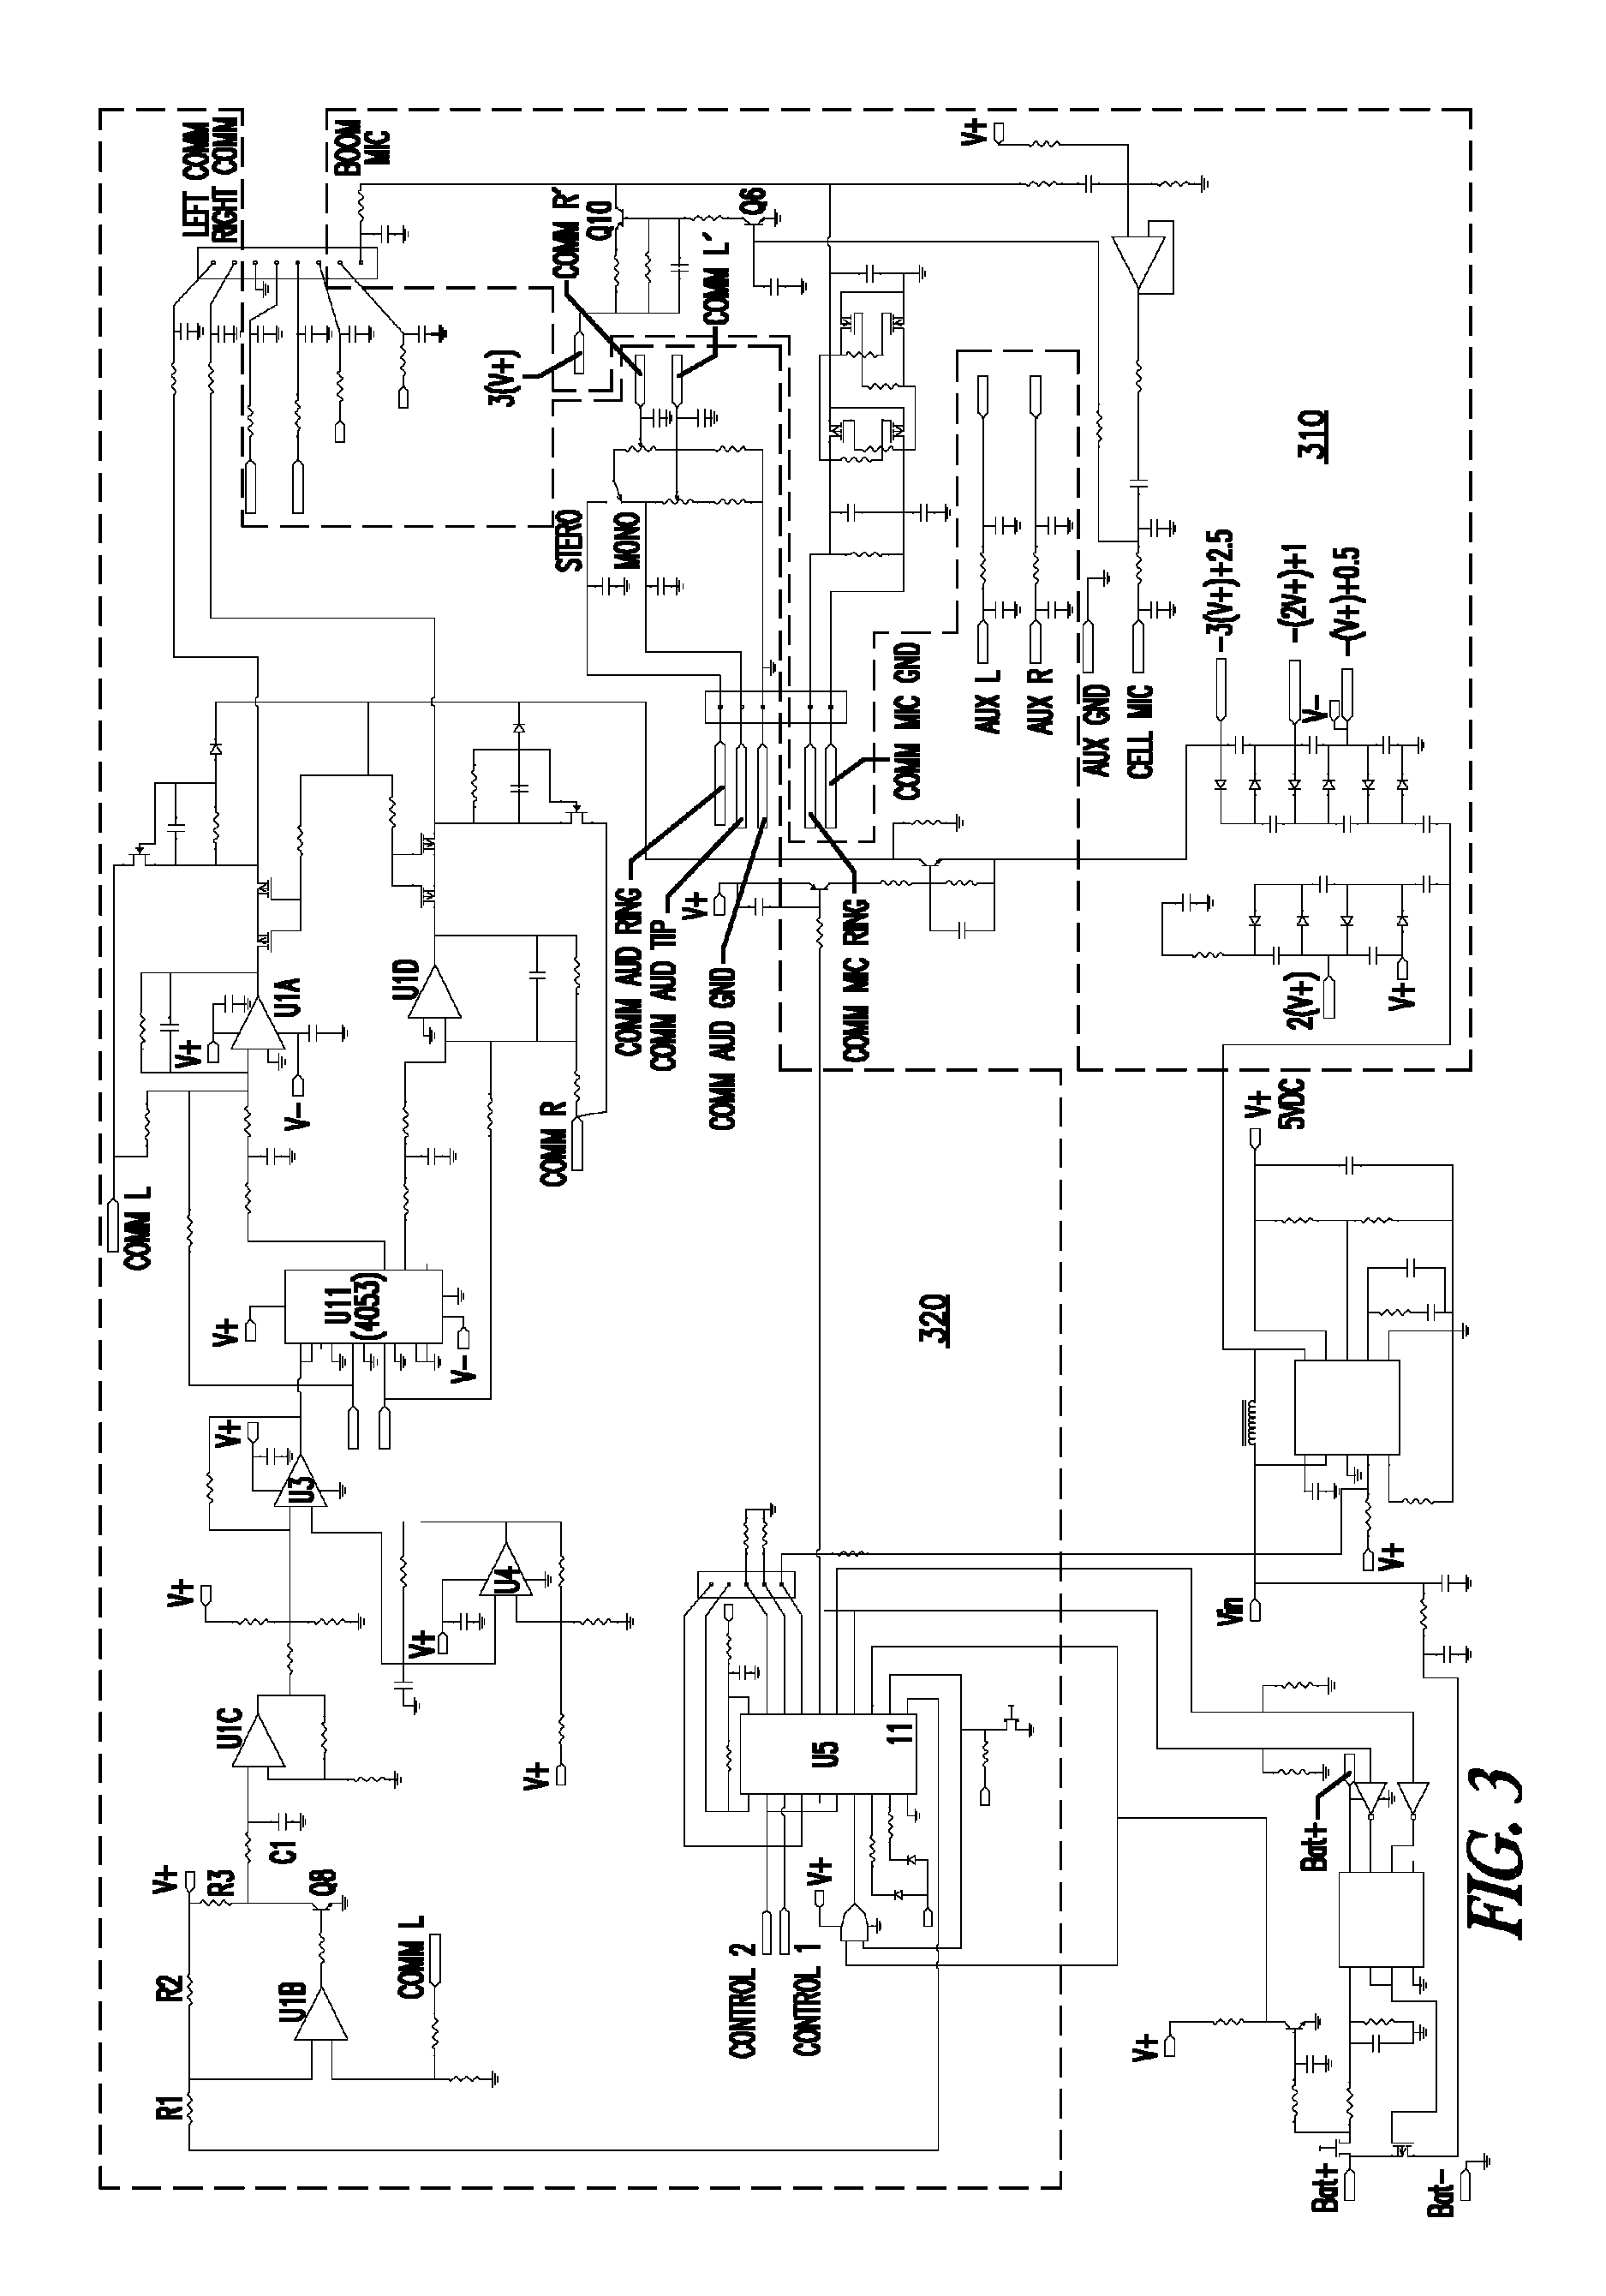 softcomm intercom wiring diagram free download  u2022 oasis